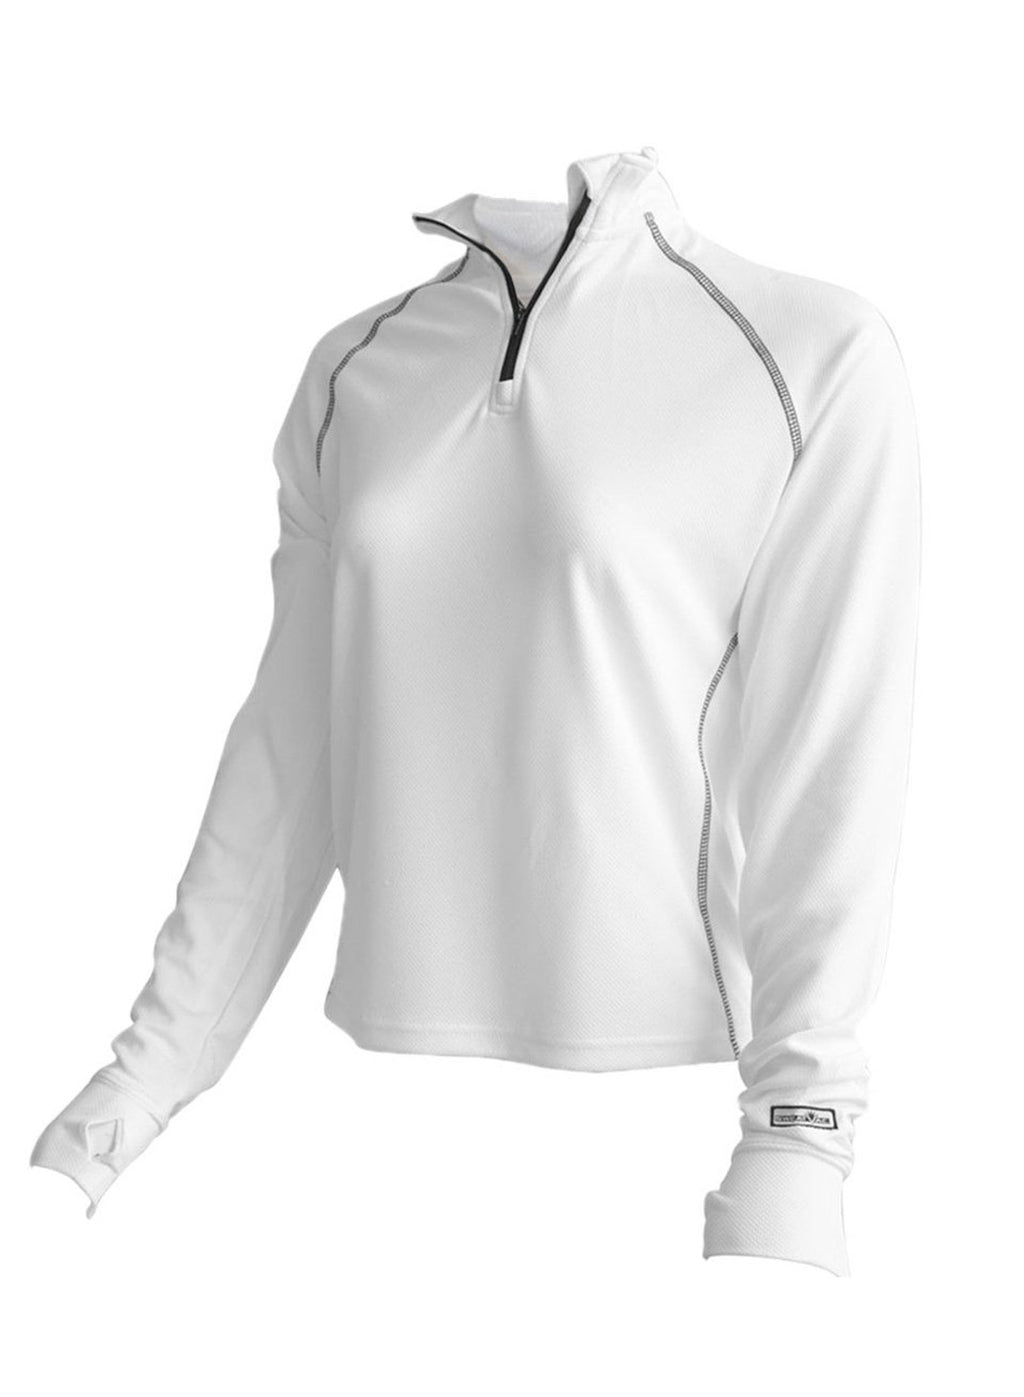 Women's Omega Quarter Zip